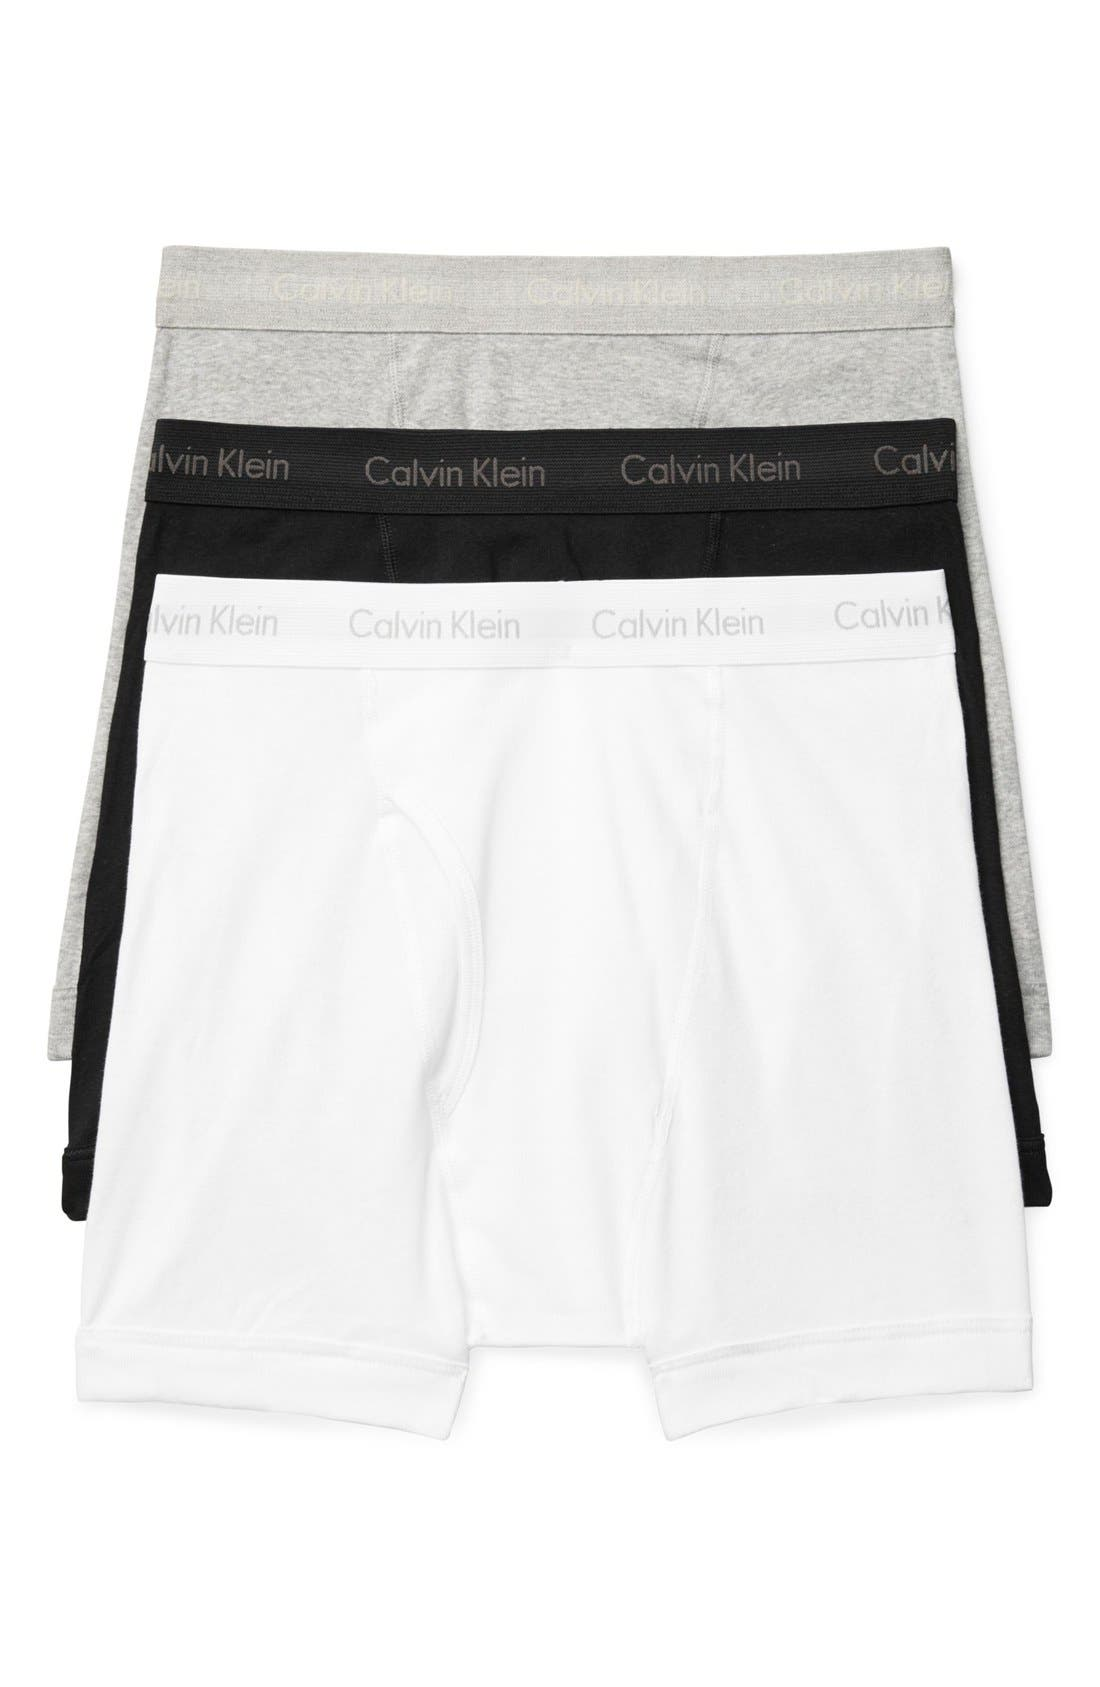 3-Pack Boxer Briefs,                         Main,                         color, White/ Black/ Heather Grey